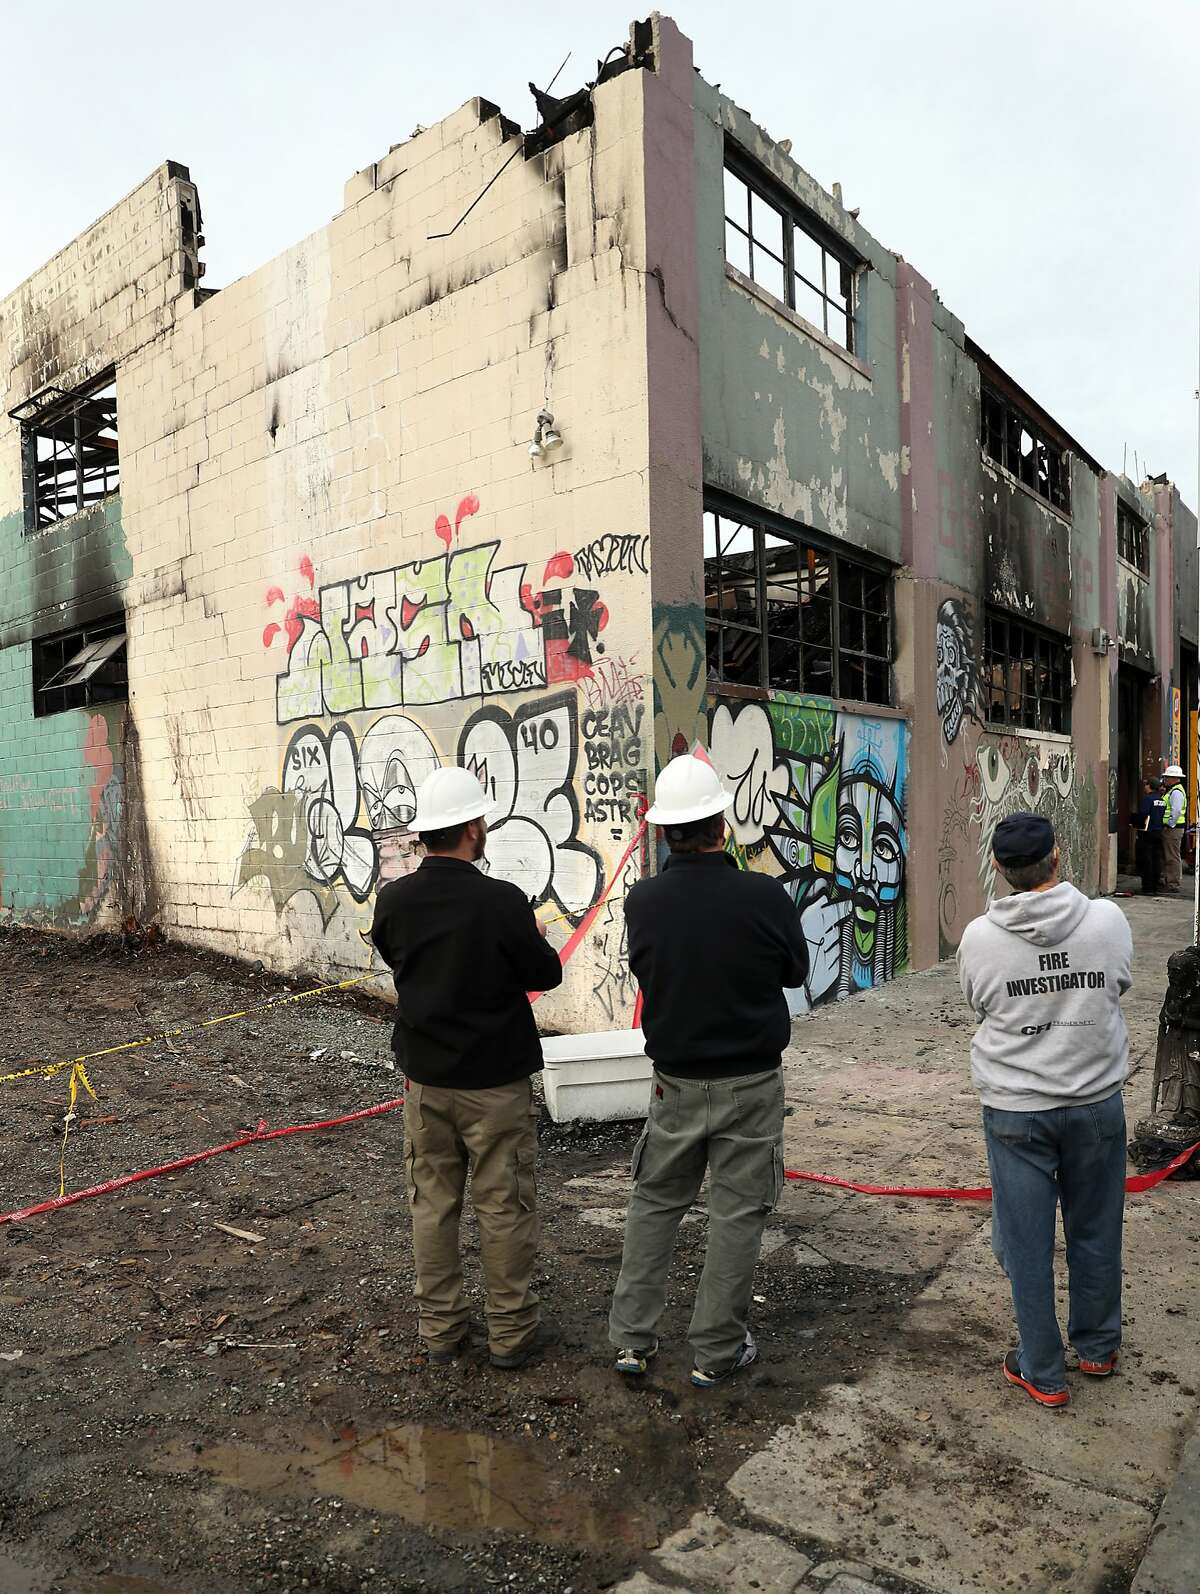 Investigators visit the scene of the deadly Ghost Ship warehouse fire in Oakland, Calif., on Monday, December 12, 2016.